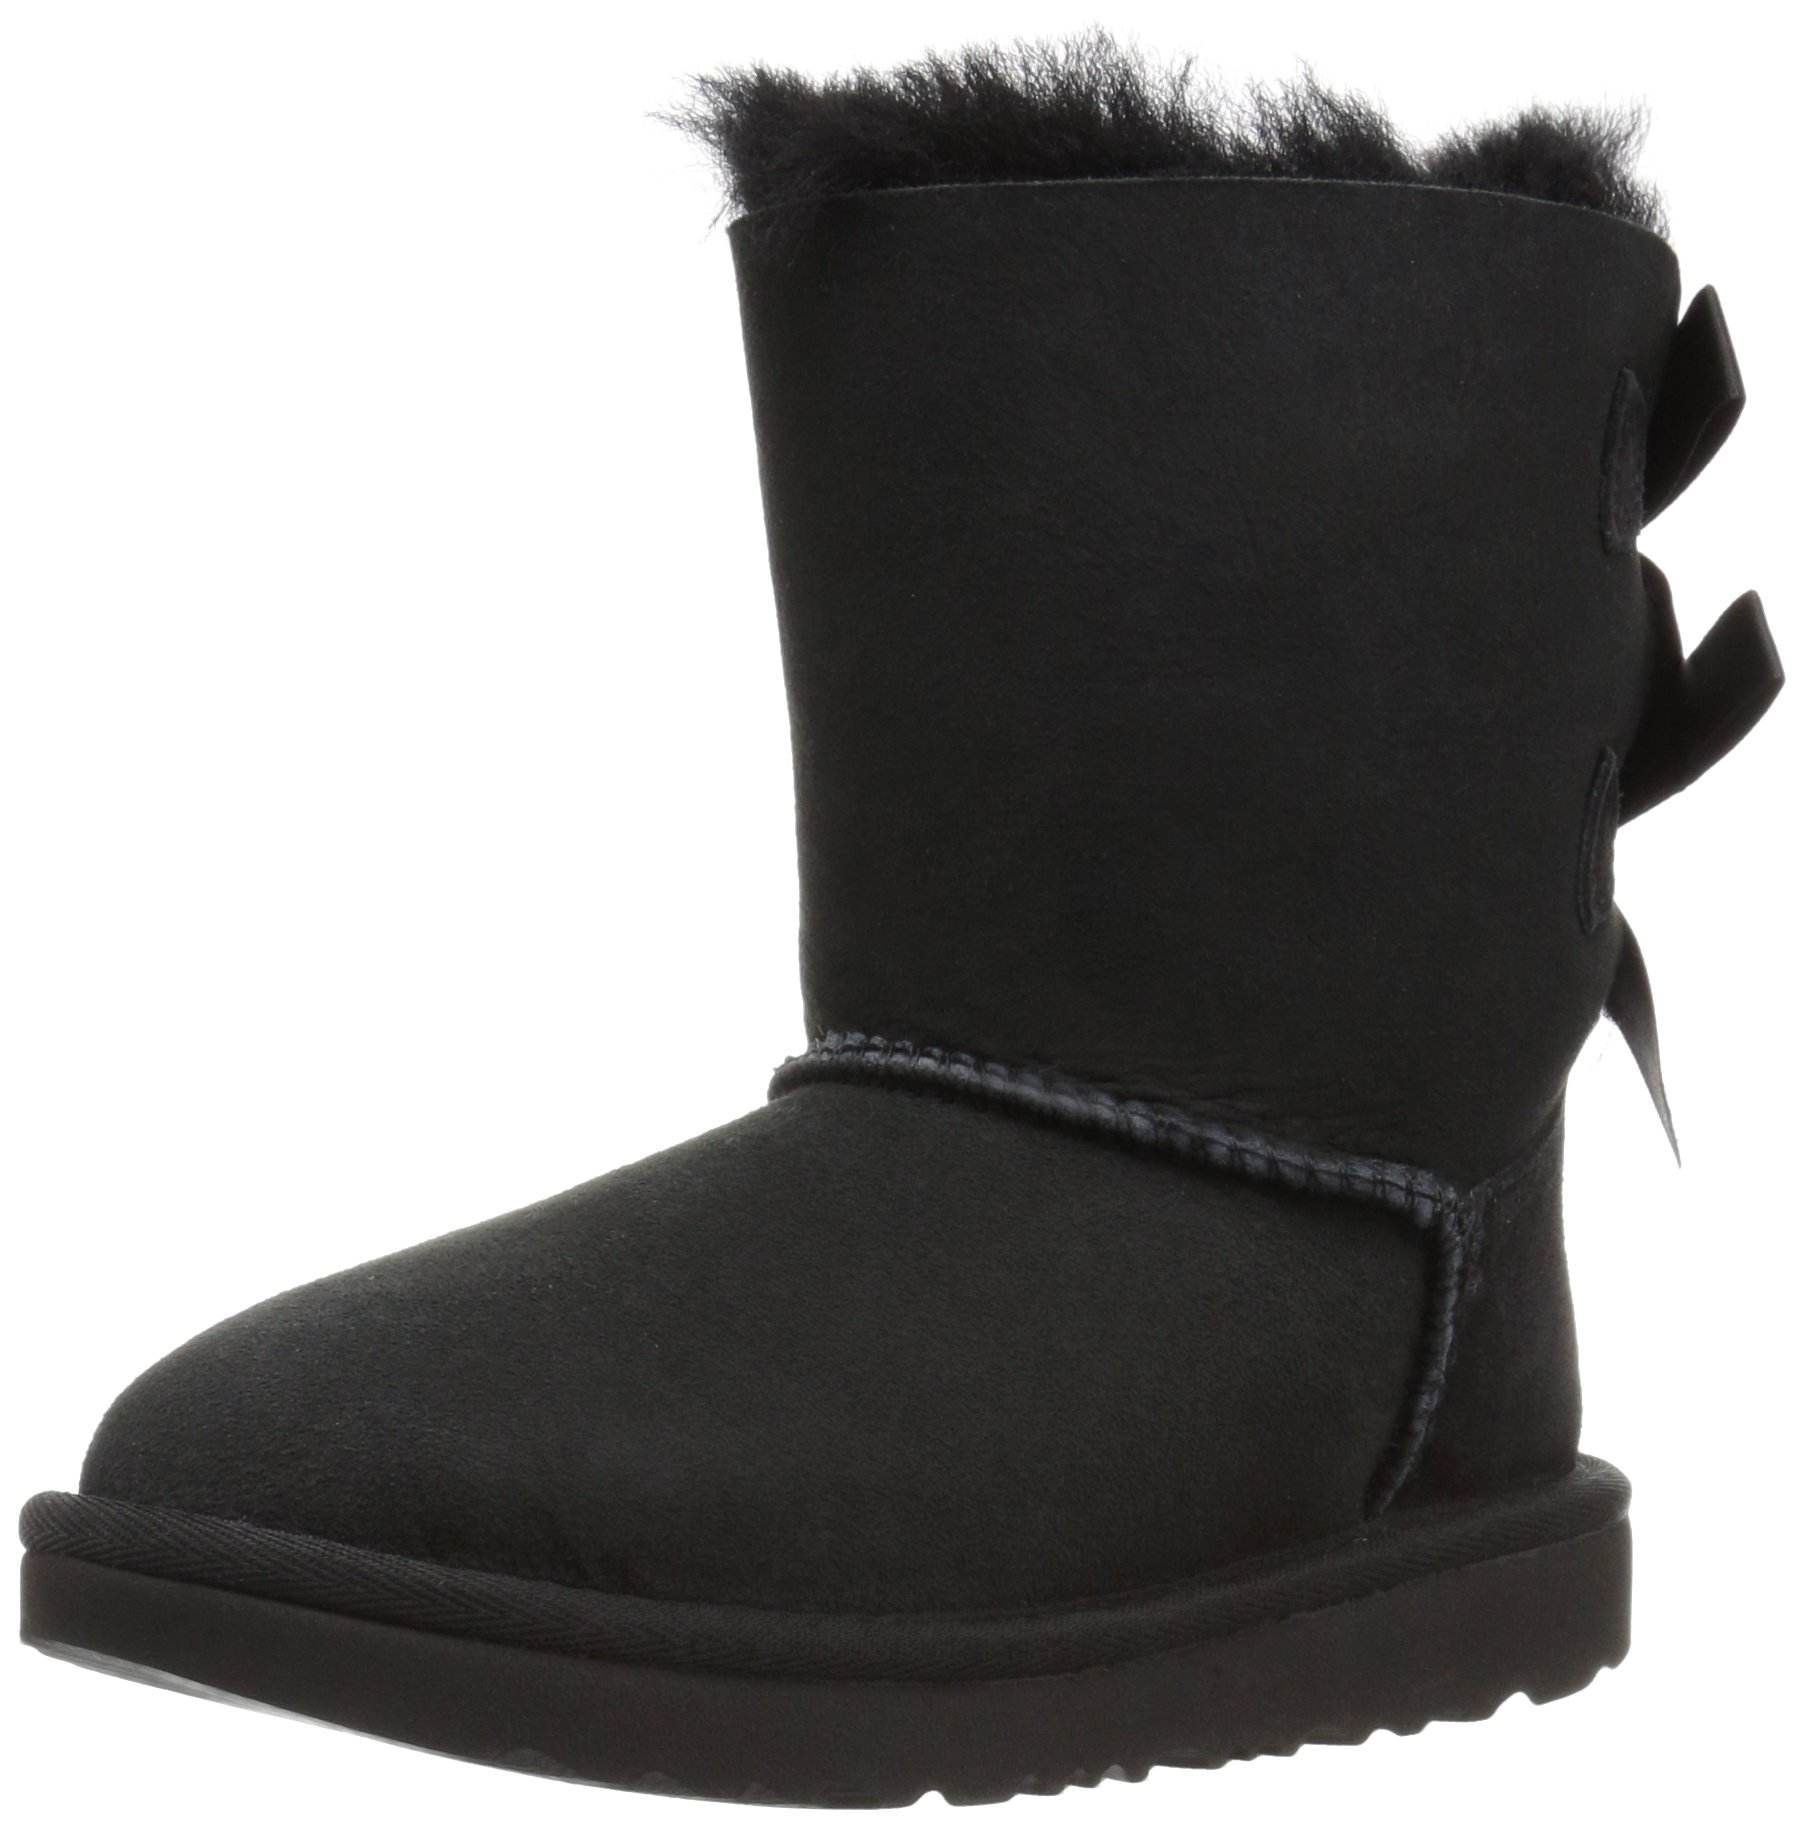 UGG Girls T Bailey Bow II Fashion Boot, Black, 9 M US Toddler